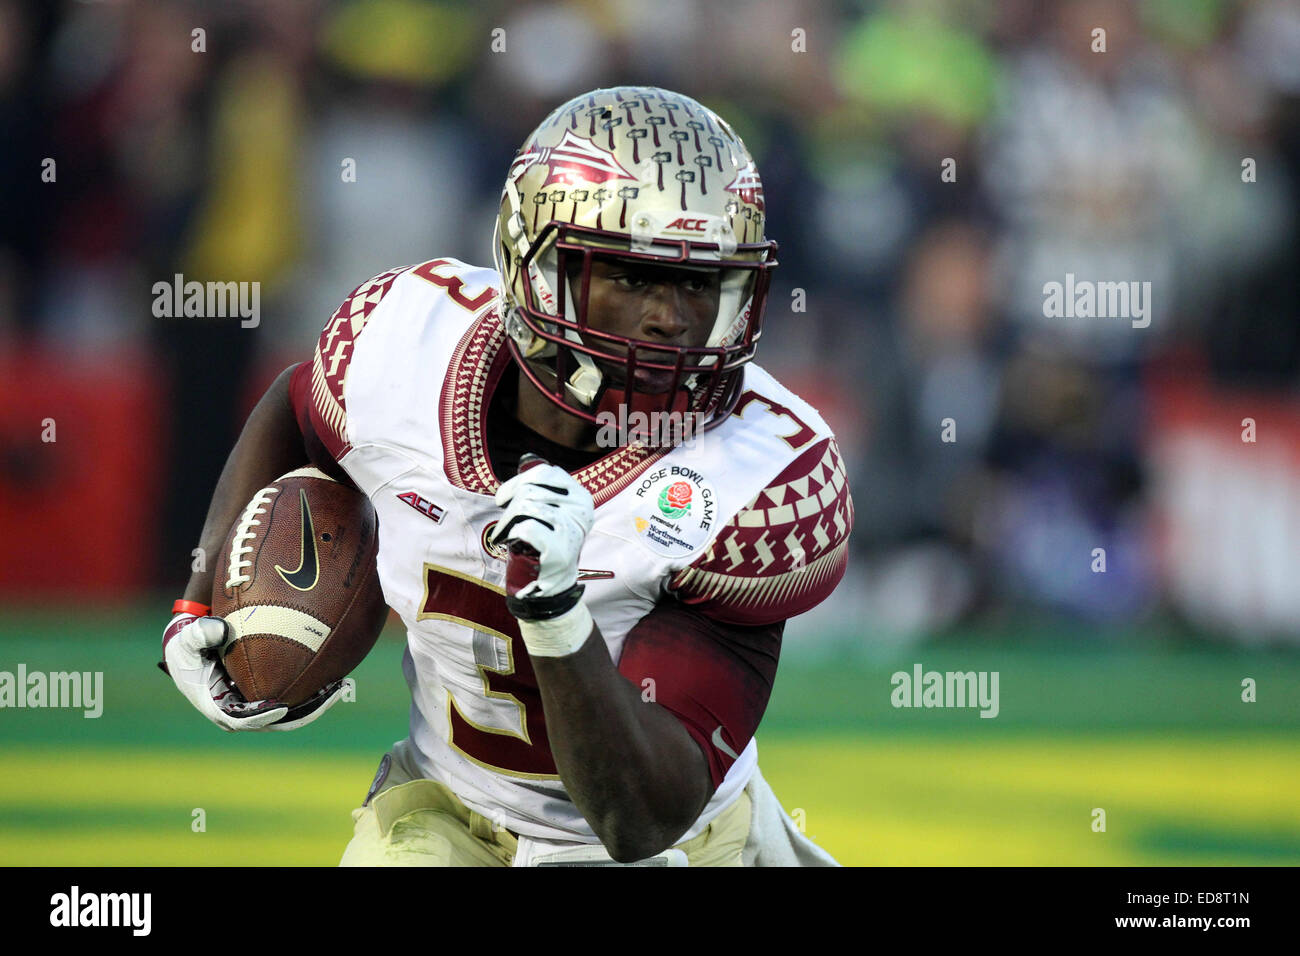 Pasadena, CA. 1st Jan, 2015. January 01, 2015 Florida State Seminoles wide receiver Jesus Wilson #3 carries the - Stock Image